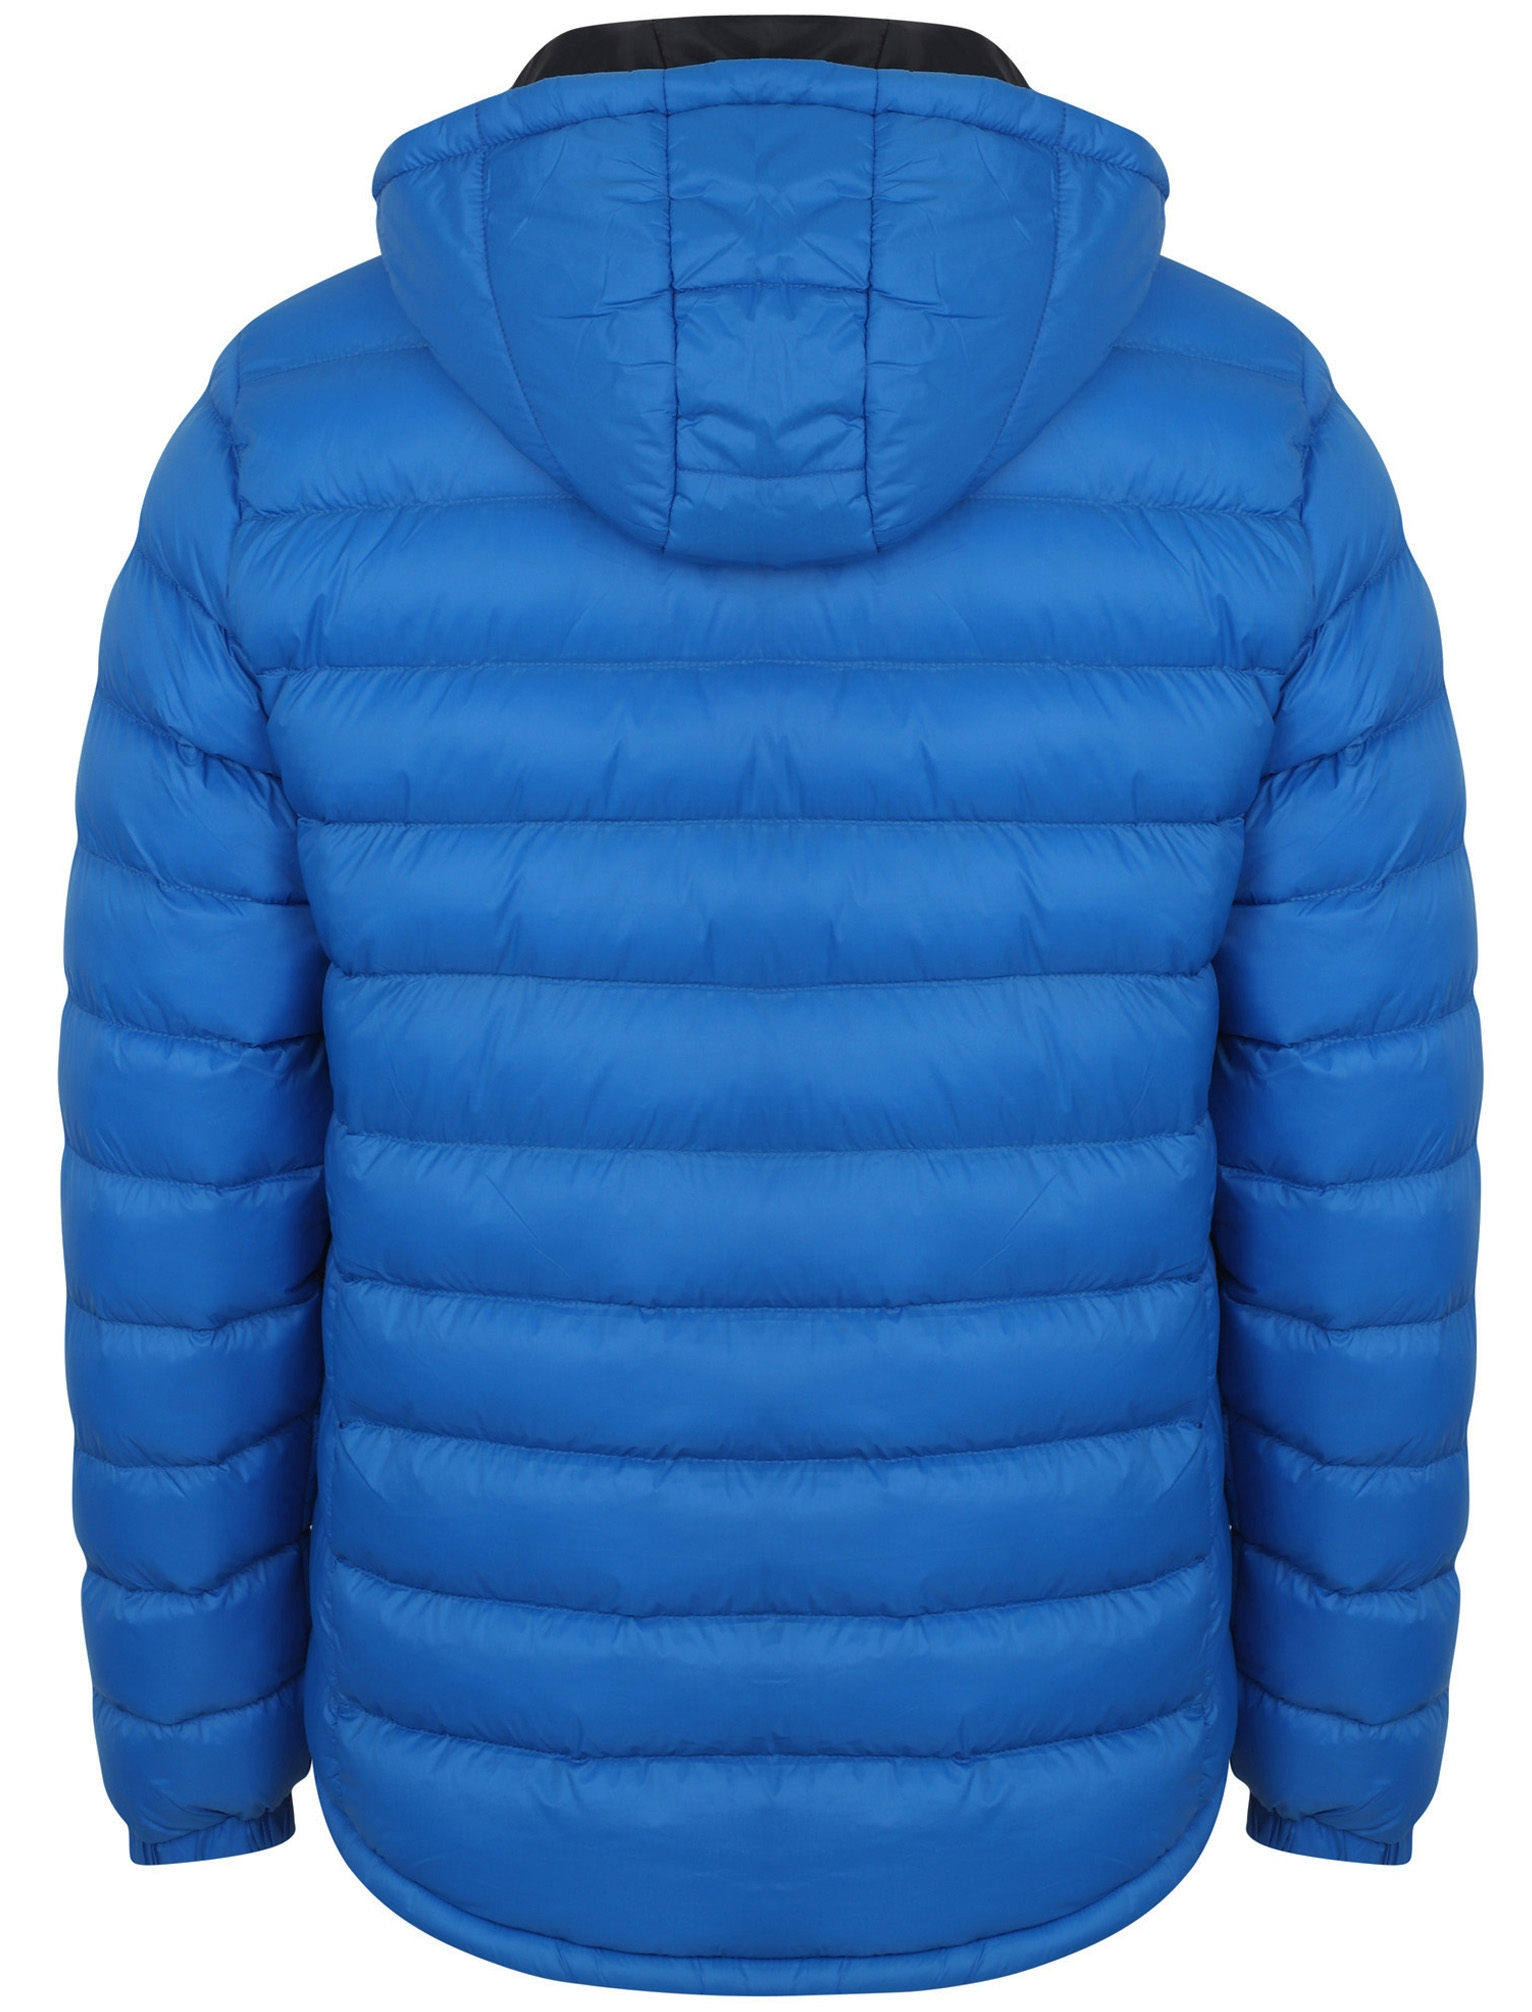 meilleur service db67f 8bb0a Details about Tokyo Laundry Men's Langham Hooded Quilted Puffer Jacket Size  S M L XL XXL